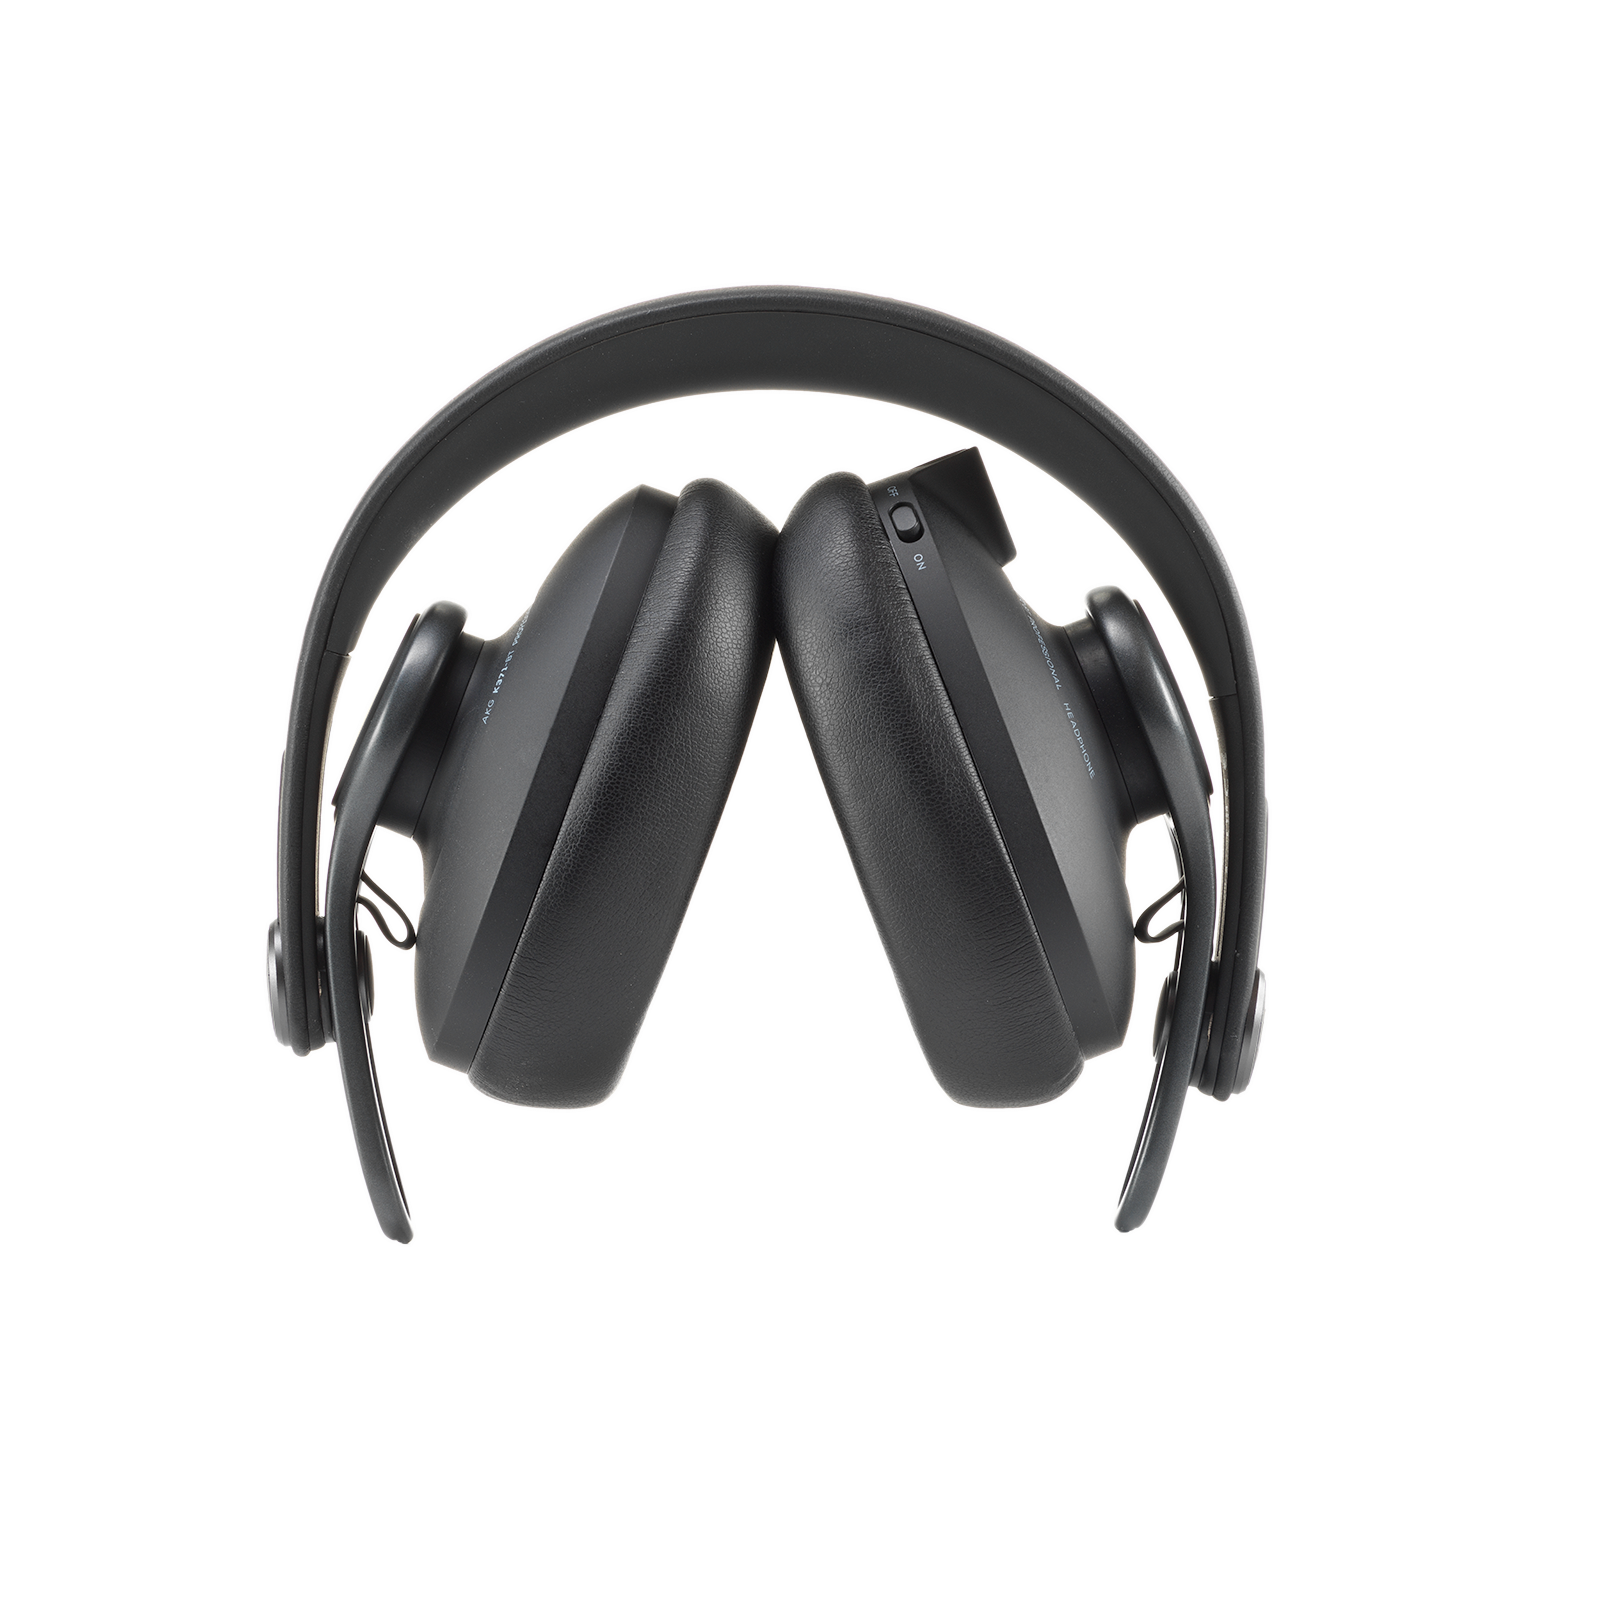 K371-BT - Black - Over-ear, closed-back, foldable studio headphones with Bluetooth - Detailshot 1